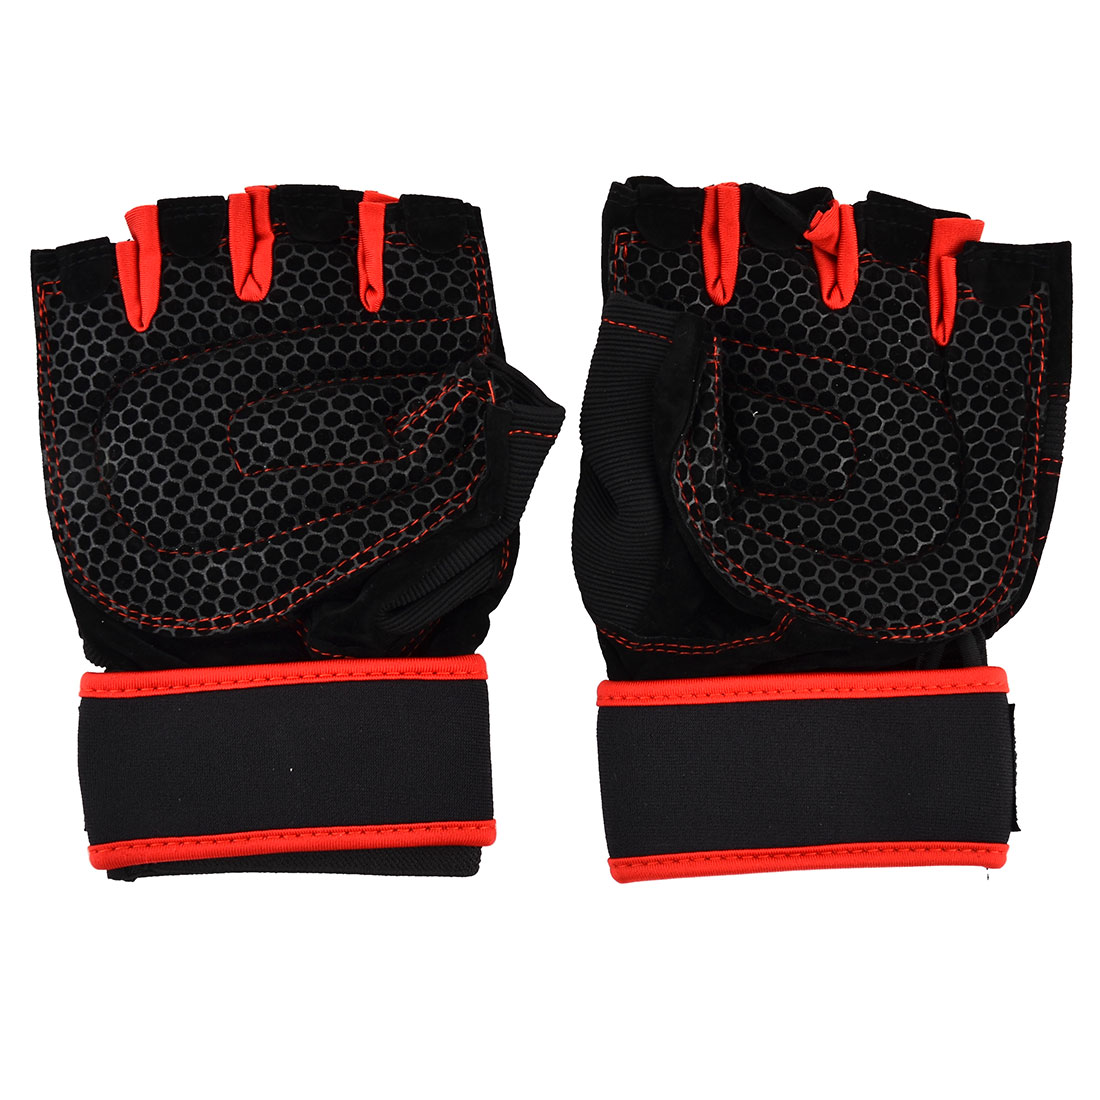 Skating Weightlifting Cycling Sport Half Finger Fingerless Gloves Black Red Pair